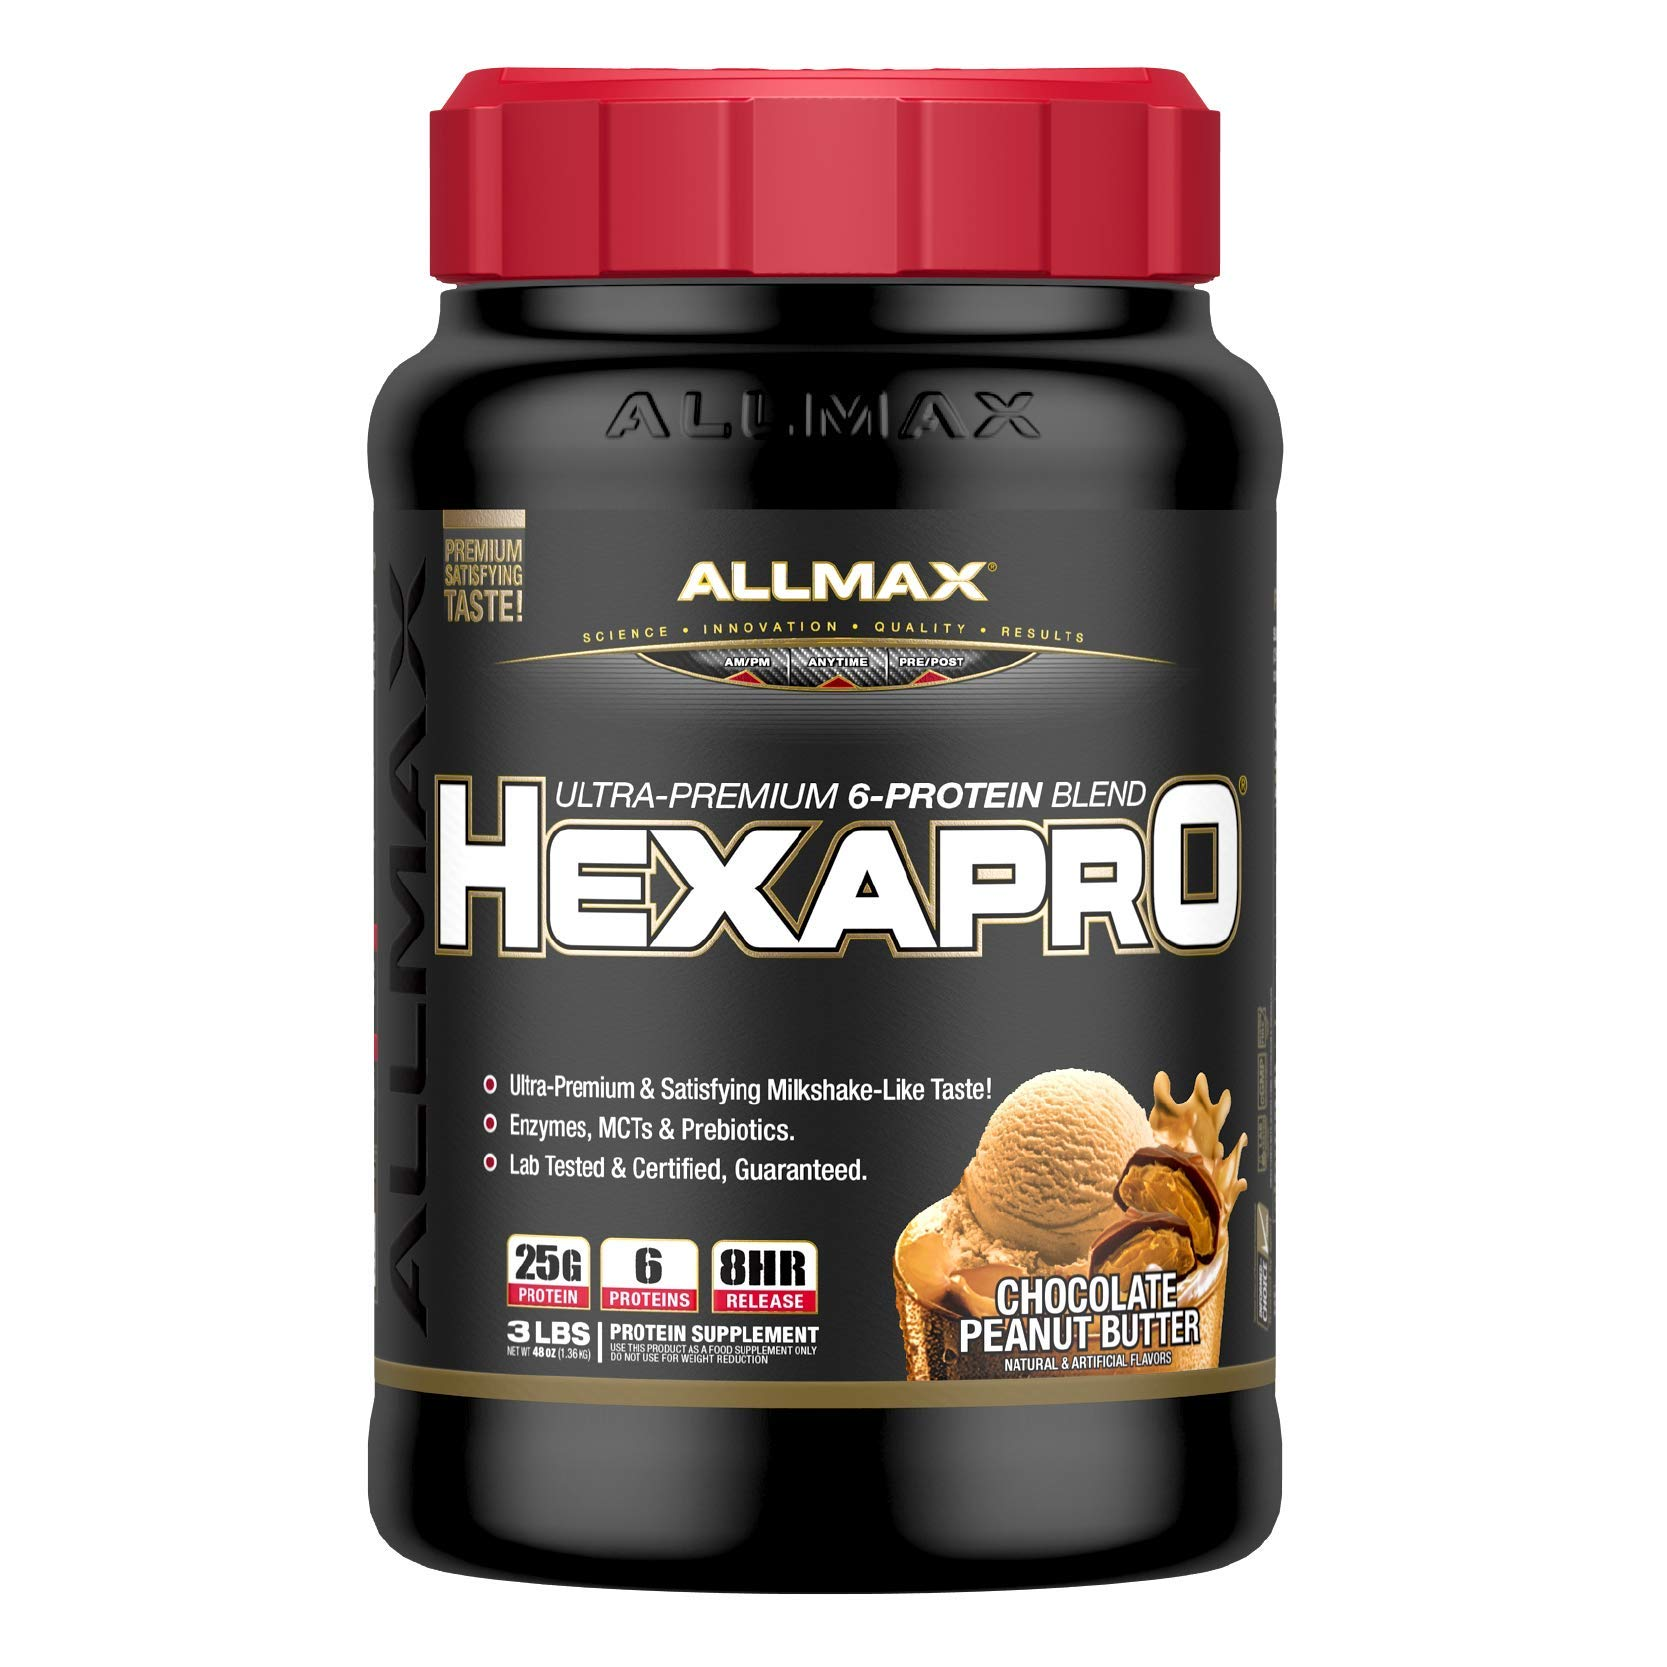 ALLMAX Nutrition Hexapro Ultra-Premium Protein Blend, Chocolate Peanut Butter, 3 lbs